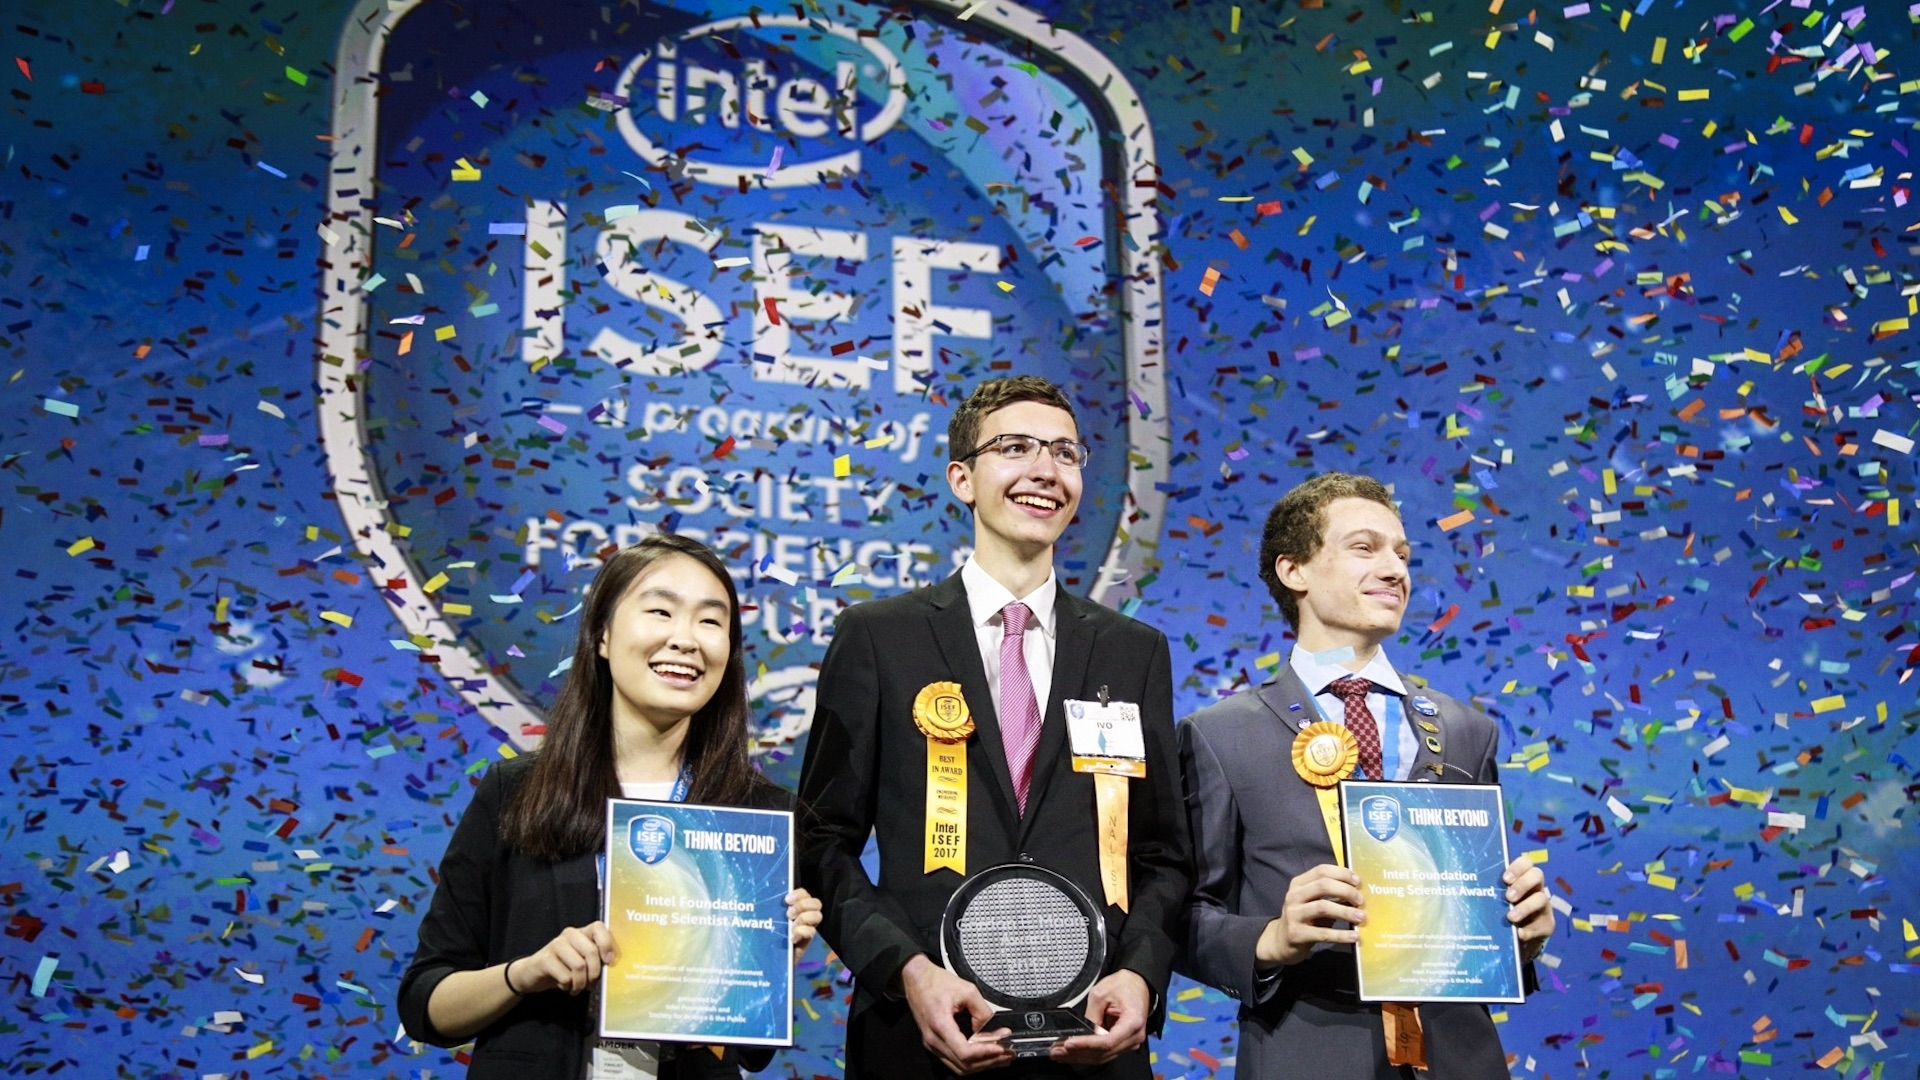 """Amber Yang (from left), Ivo Zell and Valerio Pagliarino take the stage on Friday, May 19, 2017, at the 2017 International Science and Engineering Fair, a program of Society for Science & the Public and the world's largest international pre-college science competition. Zell, of Lorch, Germany, was awarded first place for designing and constructing a remote control prototype of a new """"flying wing"""" aircraft. Yang, of Windermere, Florida, and Pagliarino, of Castelnuovo Calcea, Italy, received Intel Foundation Young Scientist Awards. (Credit: The Society for Science & the Public)"""